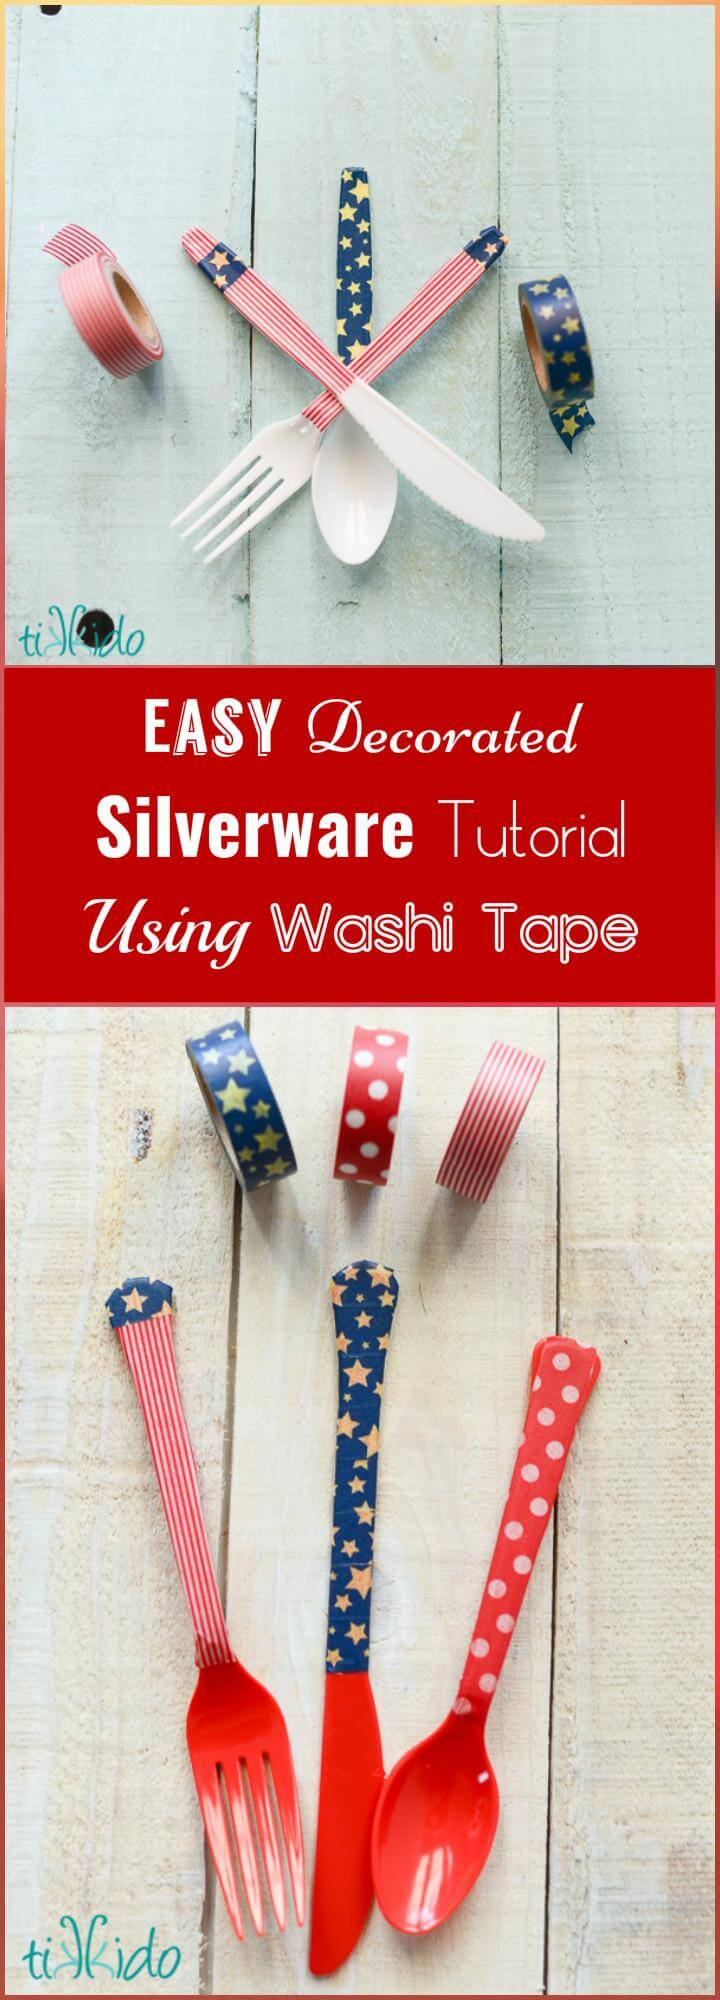 23 Easy Decorated Silverware Tutorial Using Washi Tape